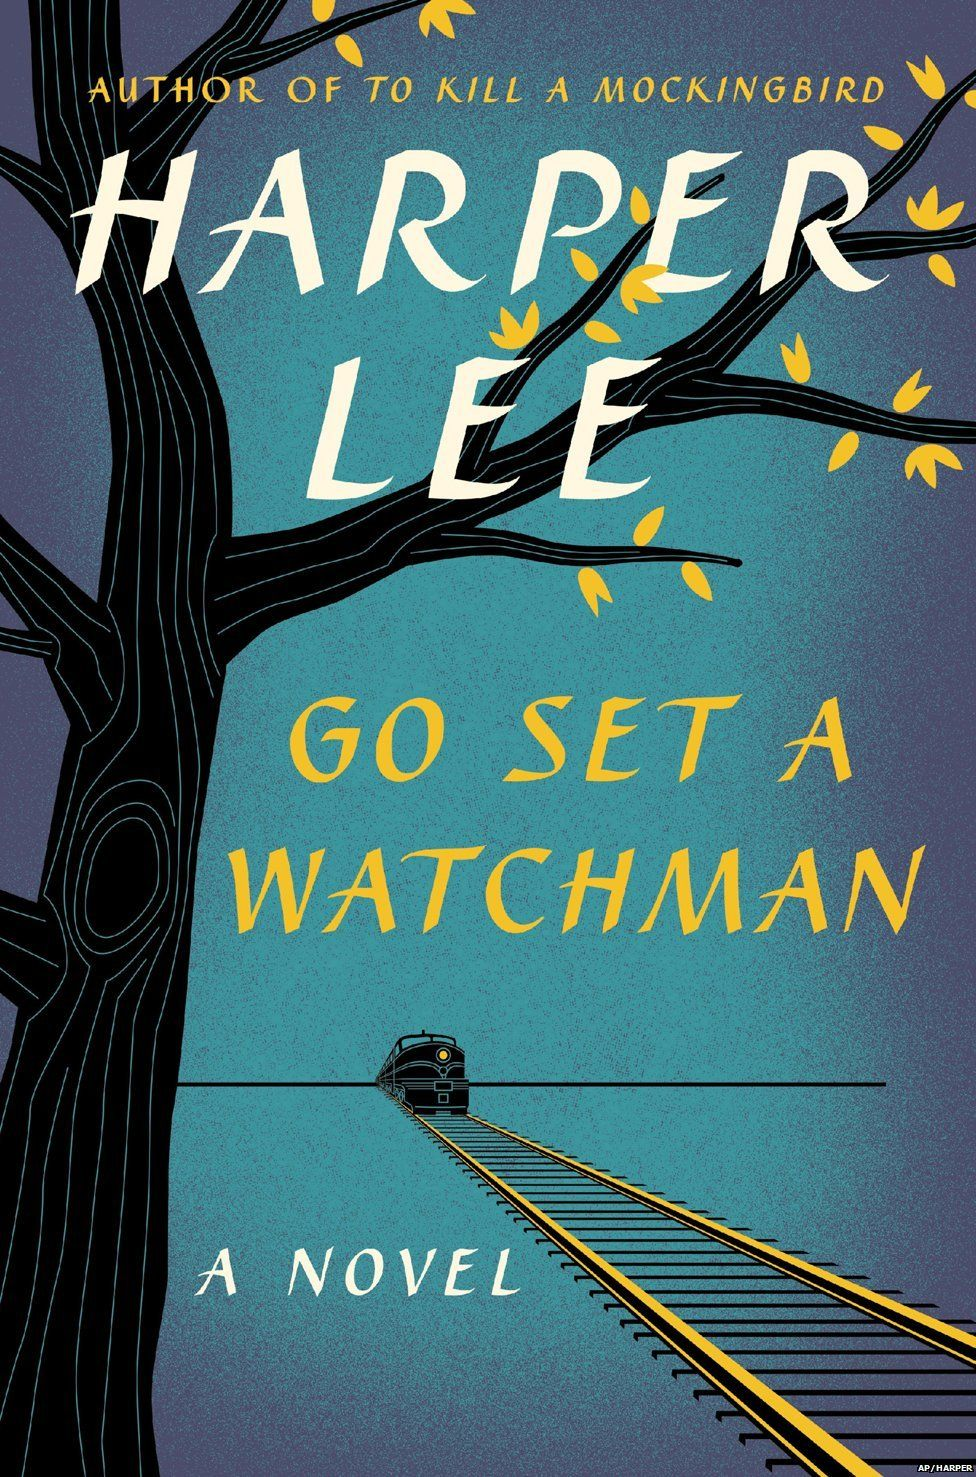 The cover of Harper Lee's novel Go Set a Watchman